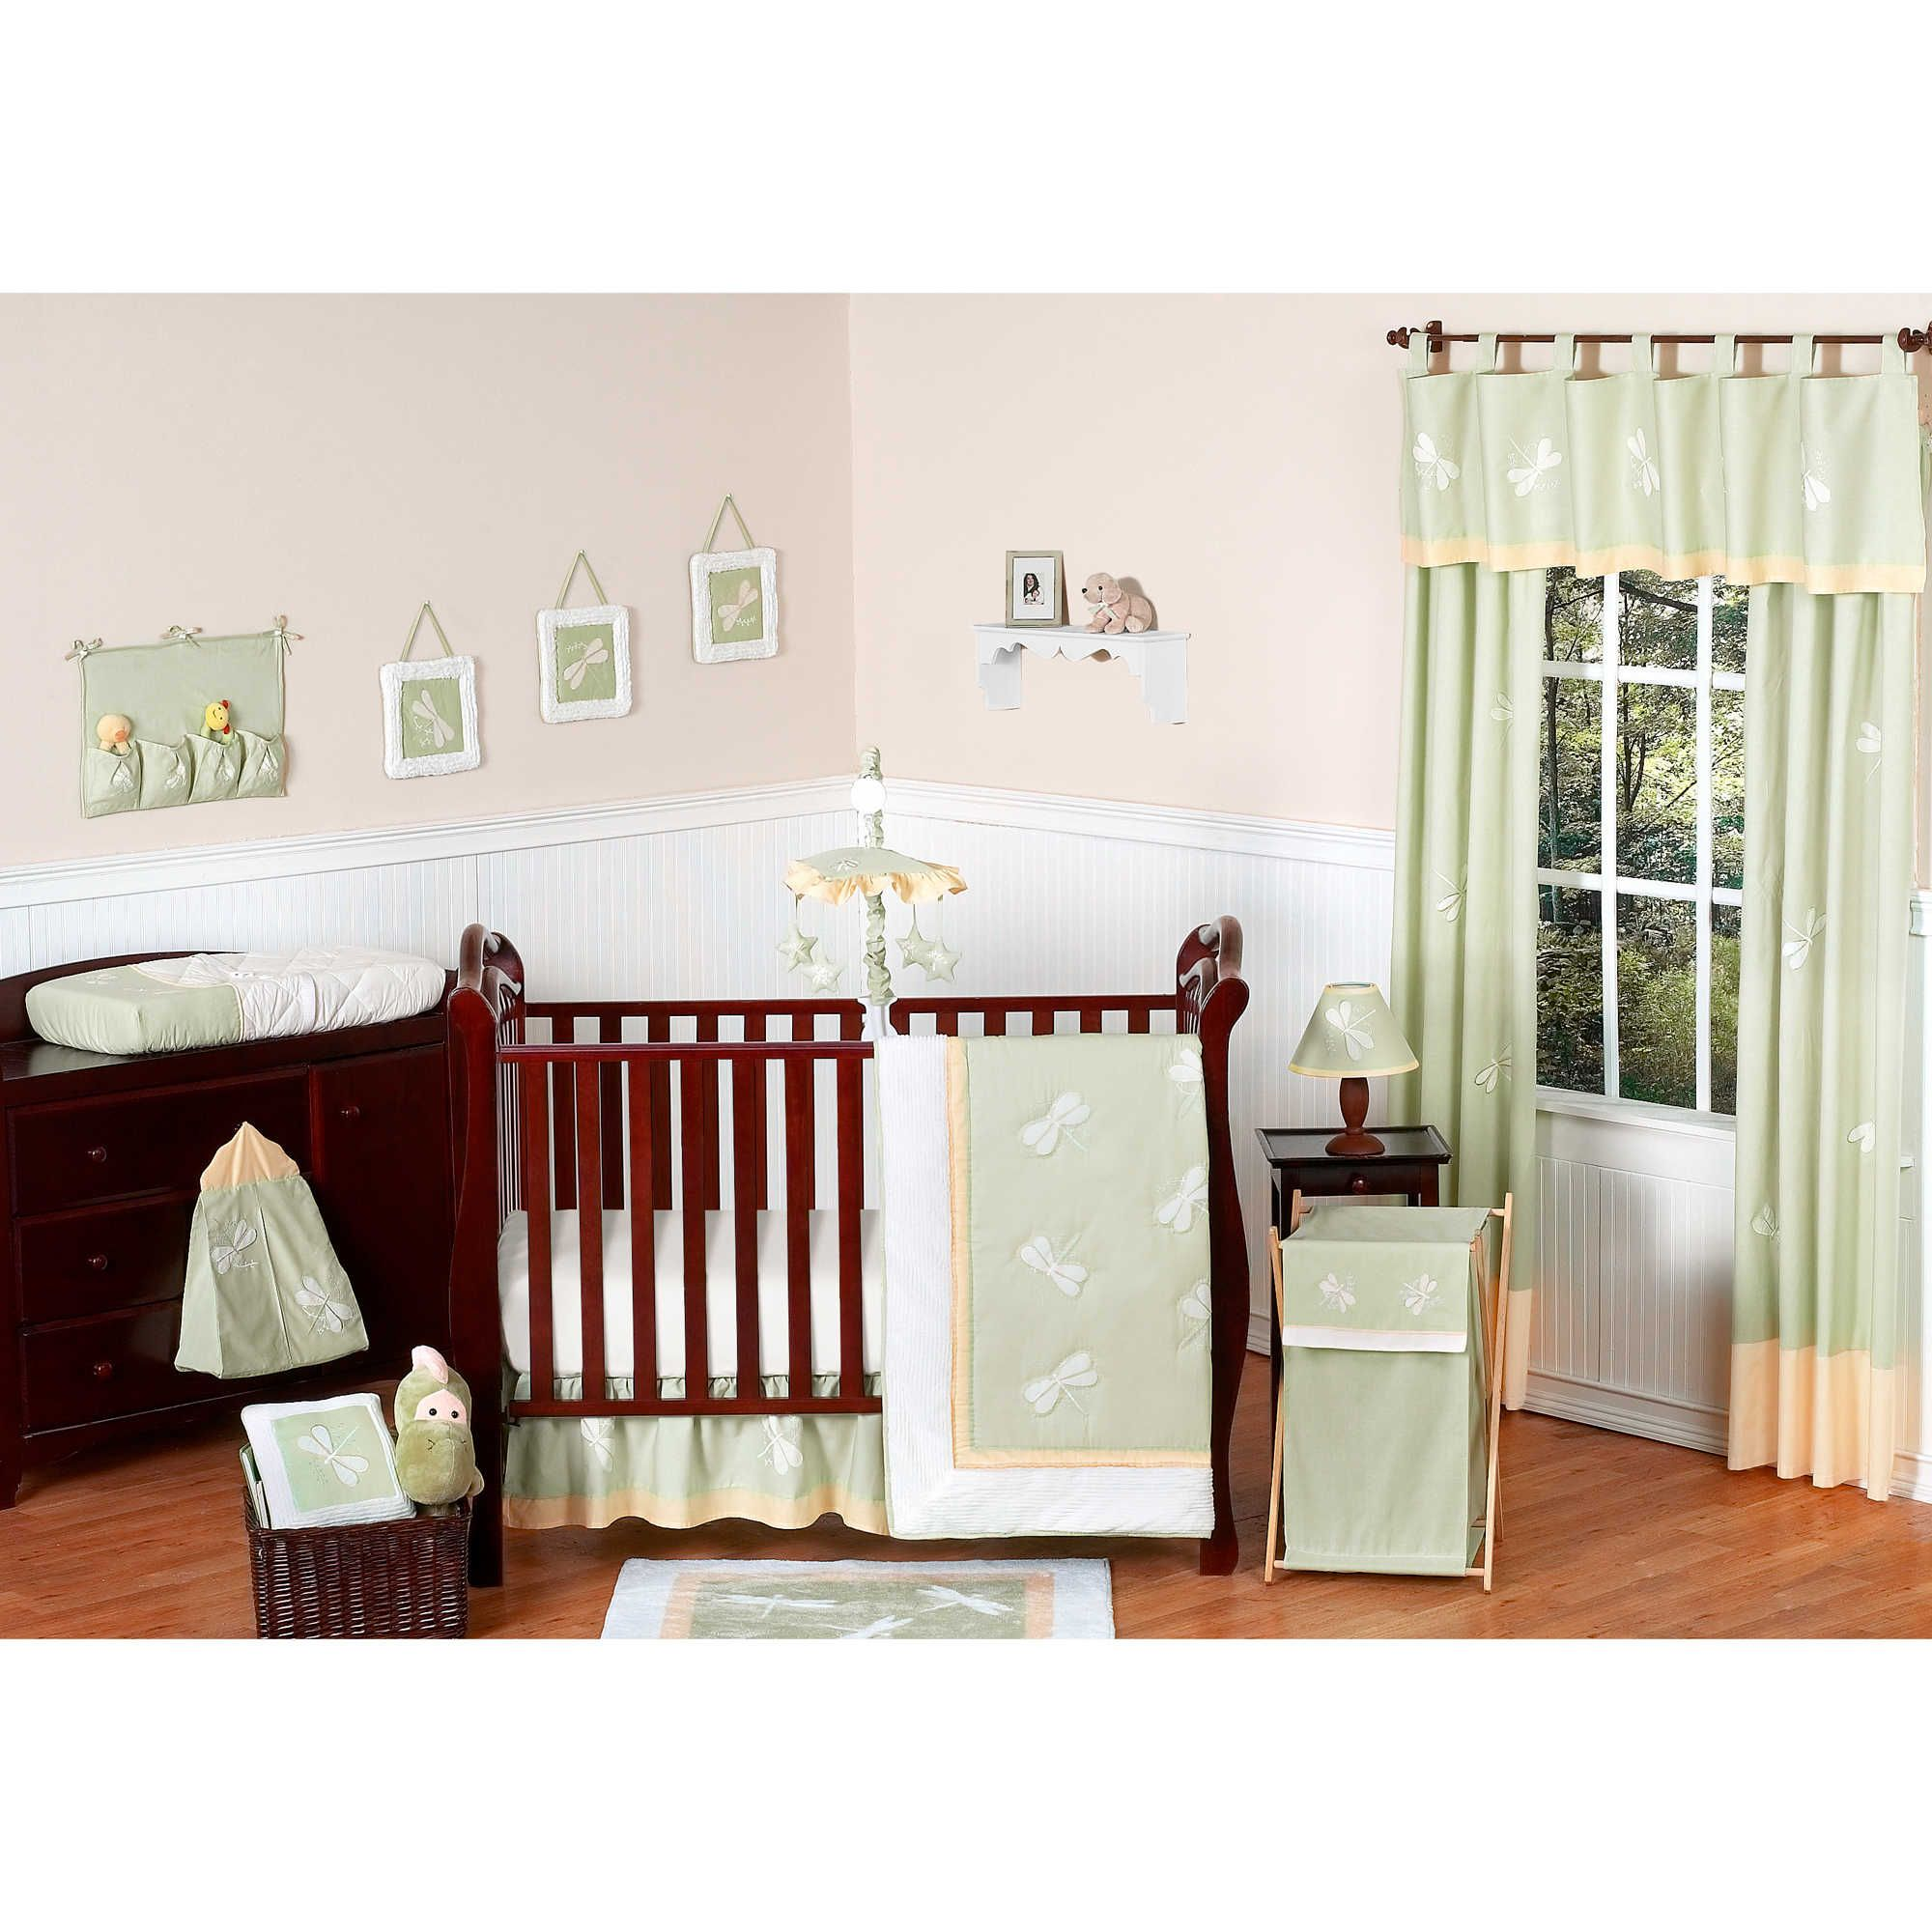 shipping overstock jojo baby today harper bedding grey chic free shabby solid collection piece crib set designs product cribs girl sweet color